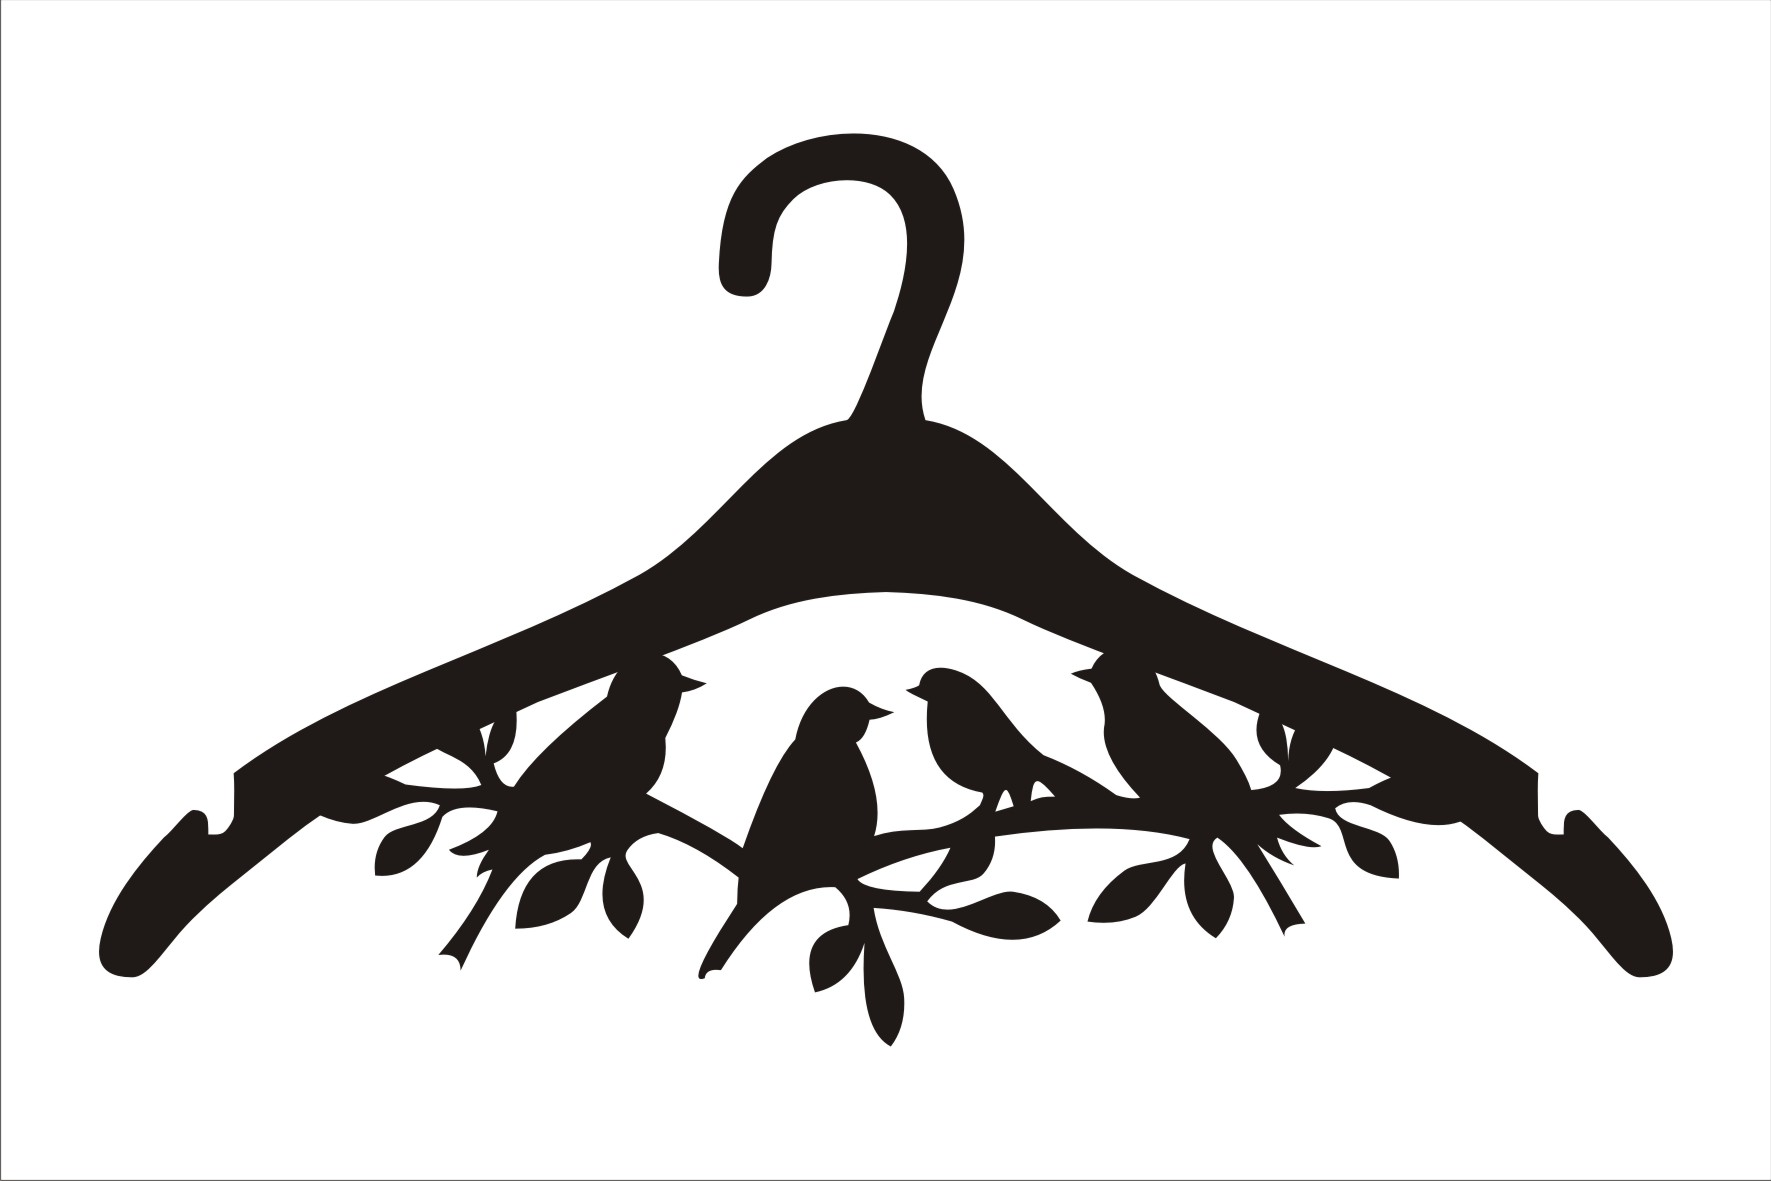 The layout in Corel. Hanger Birds on a branch